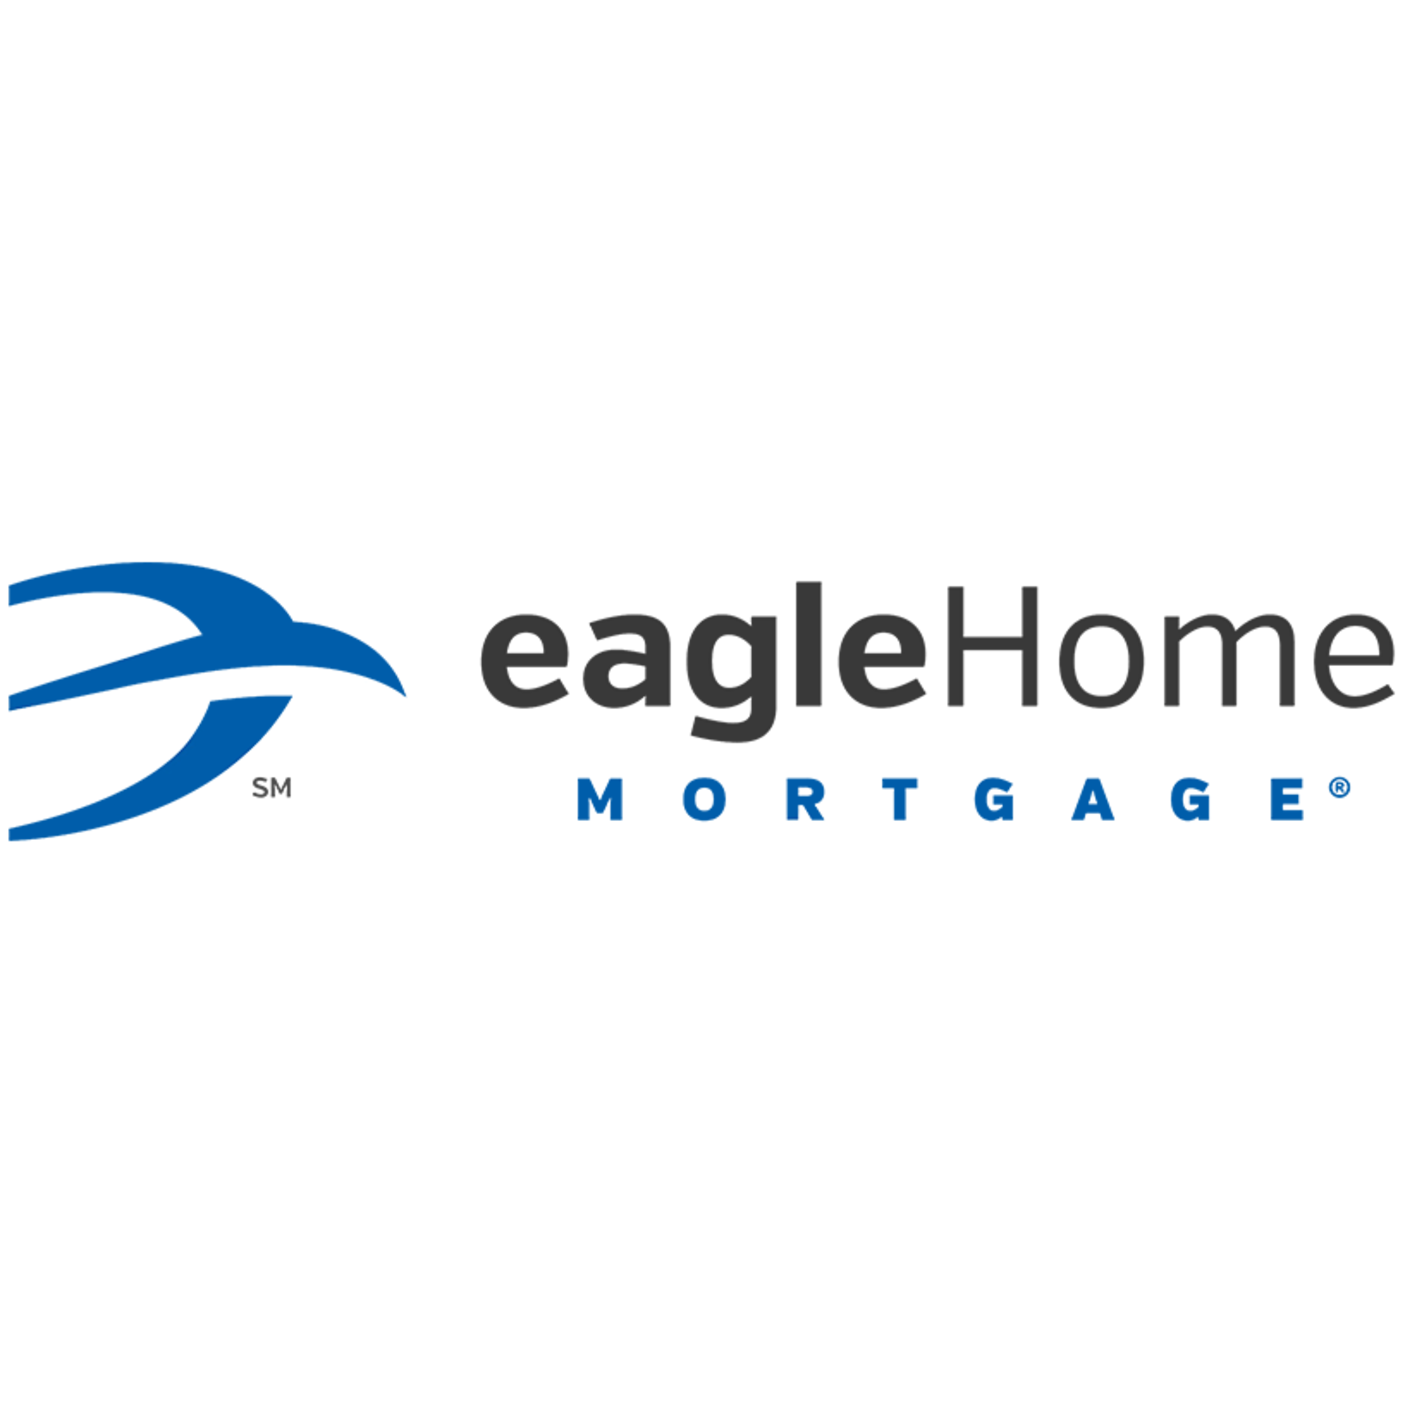 De La Cerda Team - EagleHome Mortgage image 2